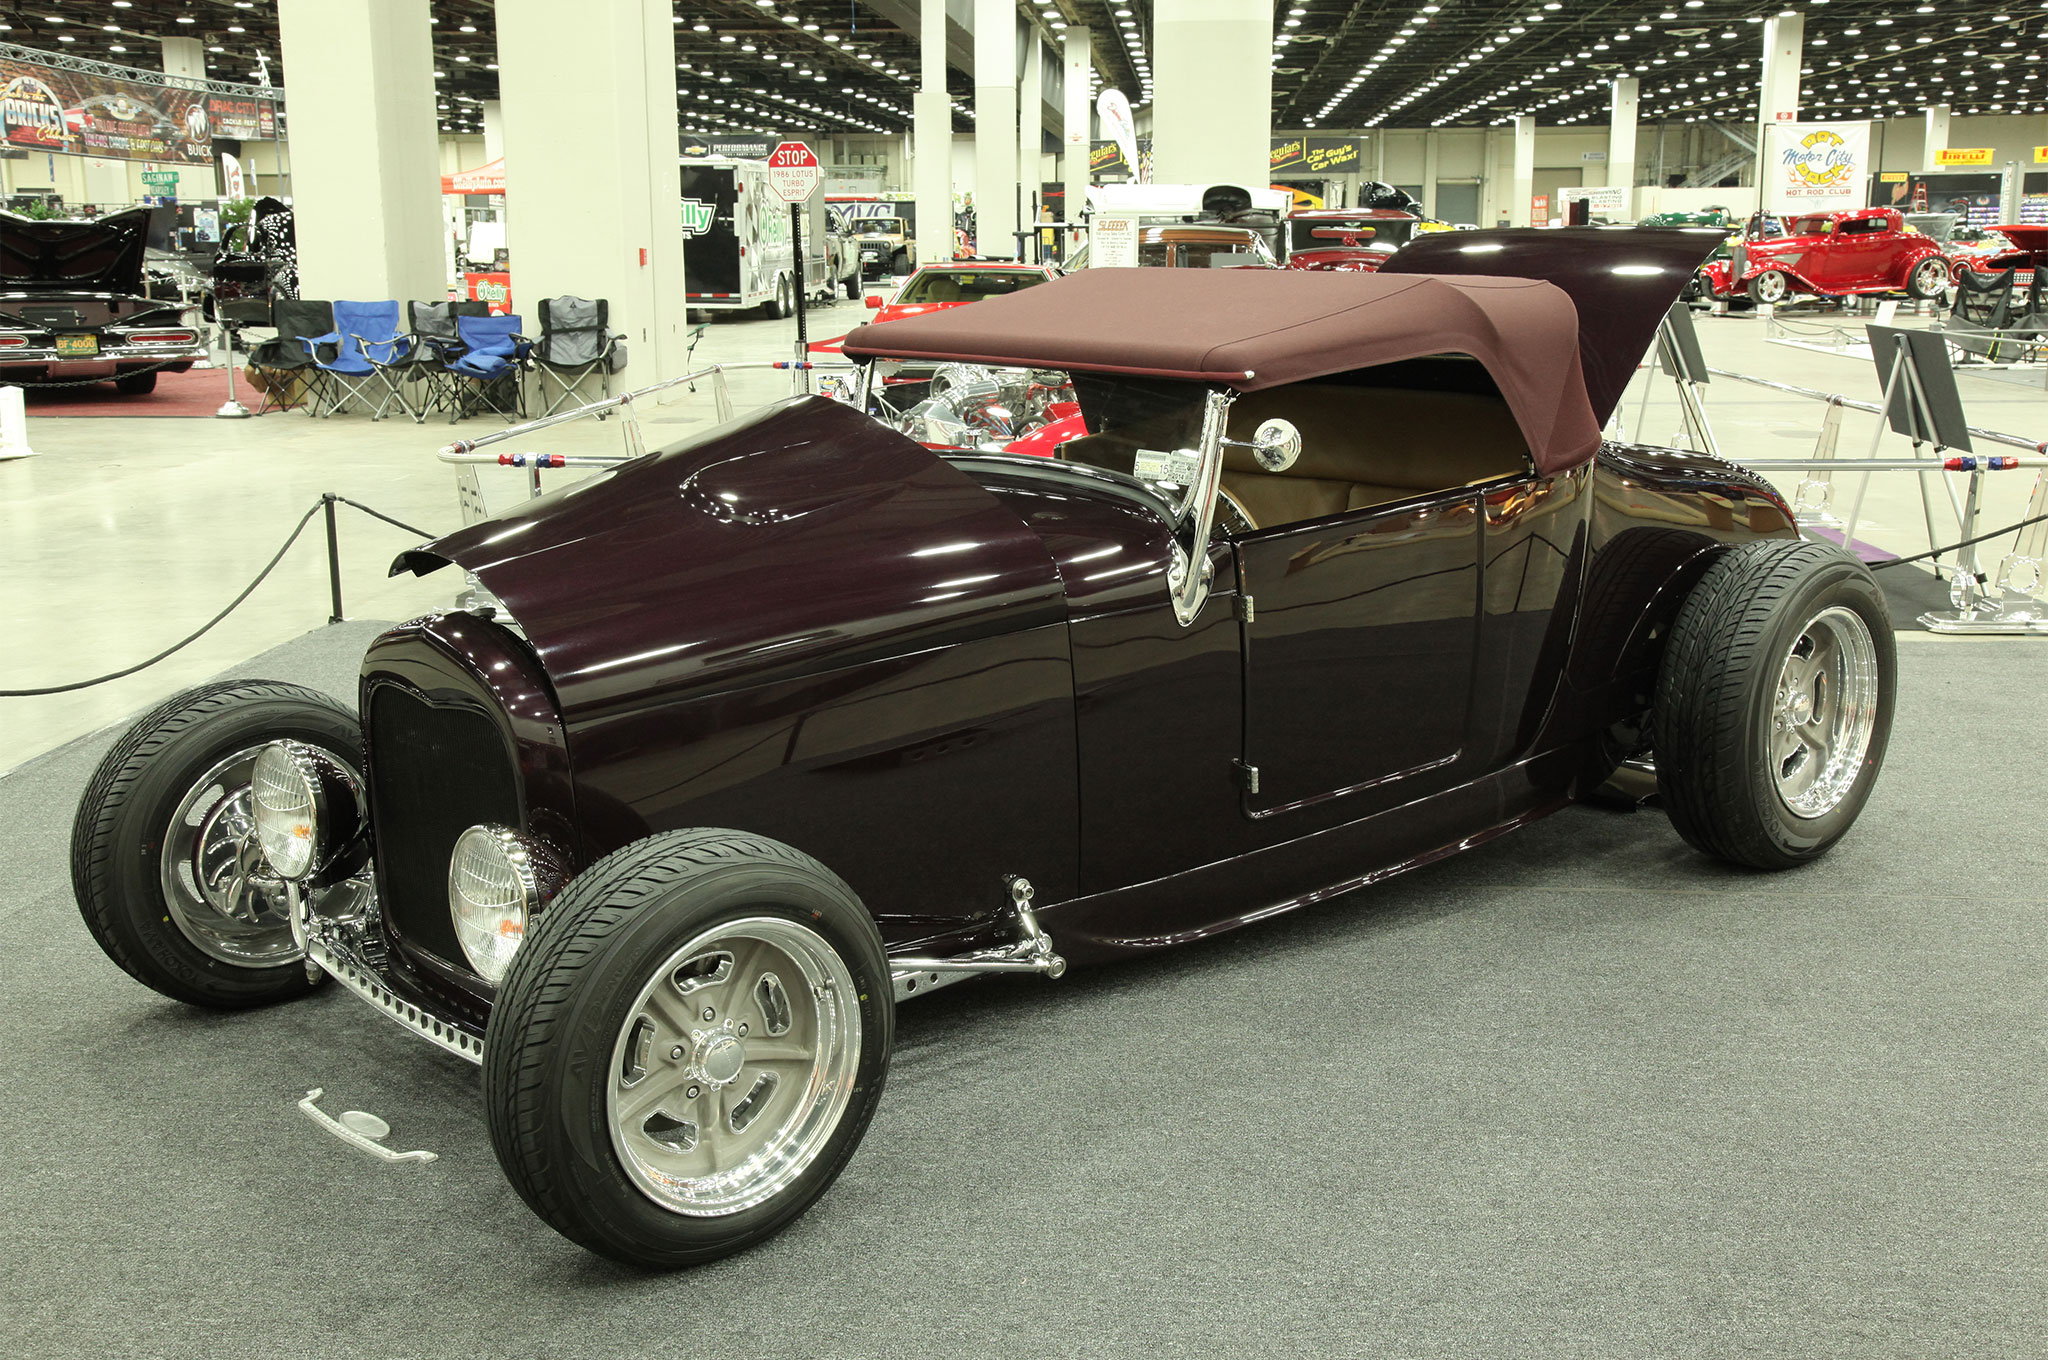 Taking First in the Altered T-Roadster class, Tom Love from North Tonawanda, NY, rolled in with his '27 that was perched on a '32 frame. Using a Shadow Rods body, Love incorporated a ZZ383 GM motor, 15- and 17-inch Billet Specialties wheels, and one-off bucket seats from County Seats Custom Upholstery.